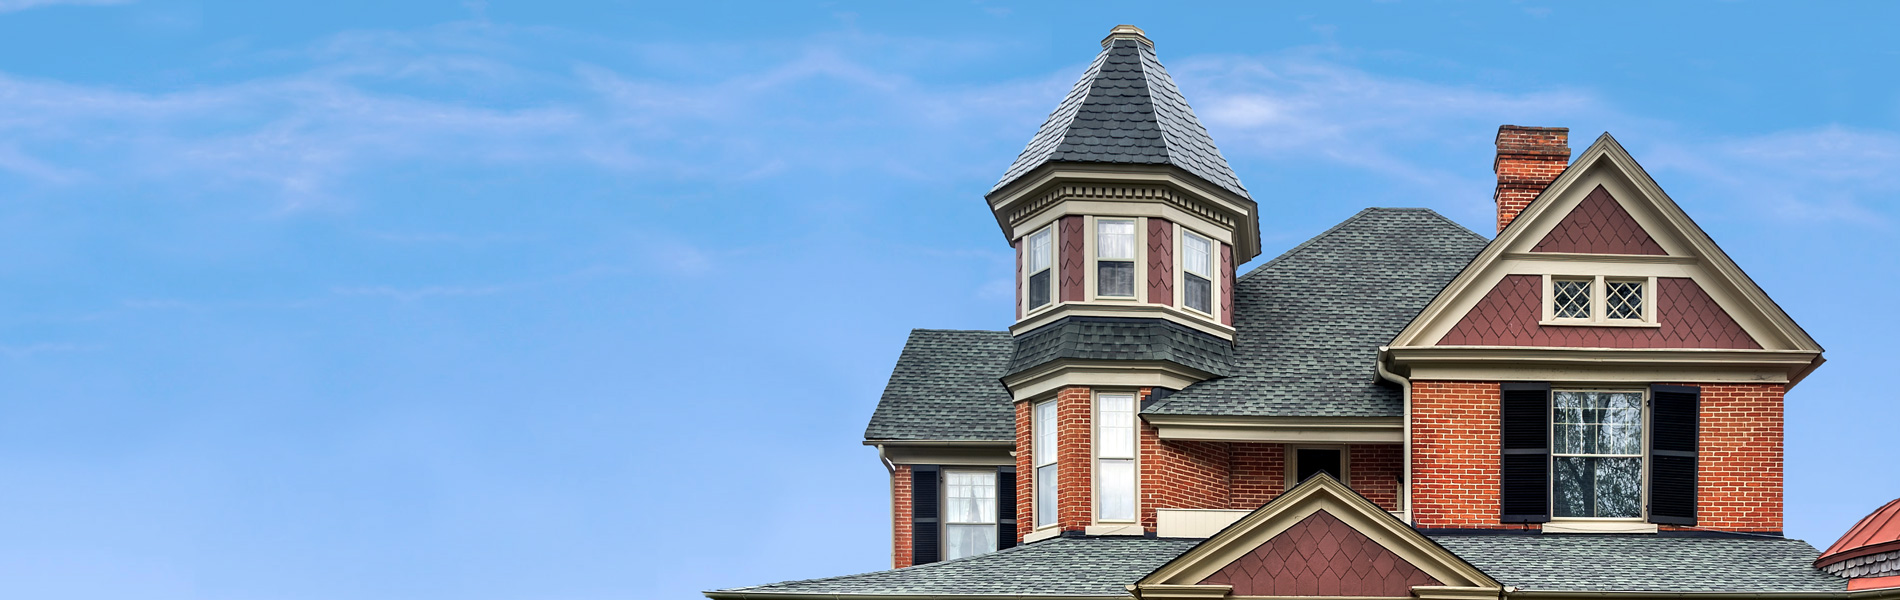 Rochester Hills Historic Home Painting